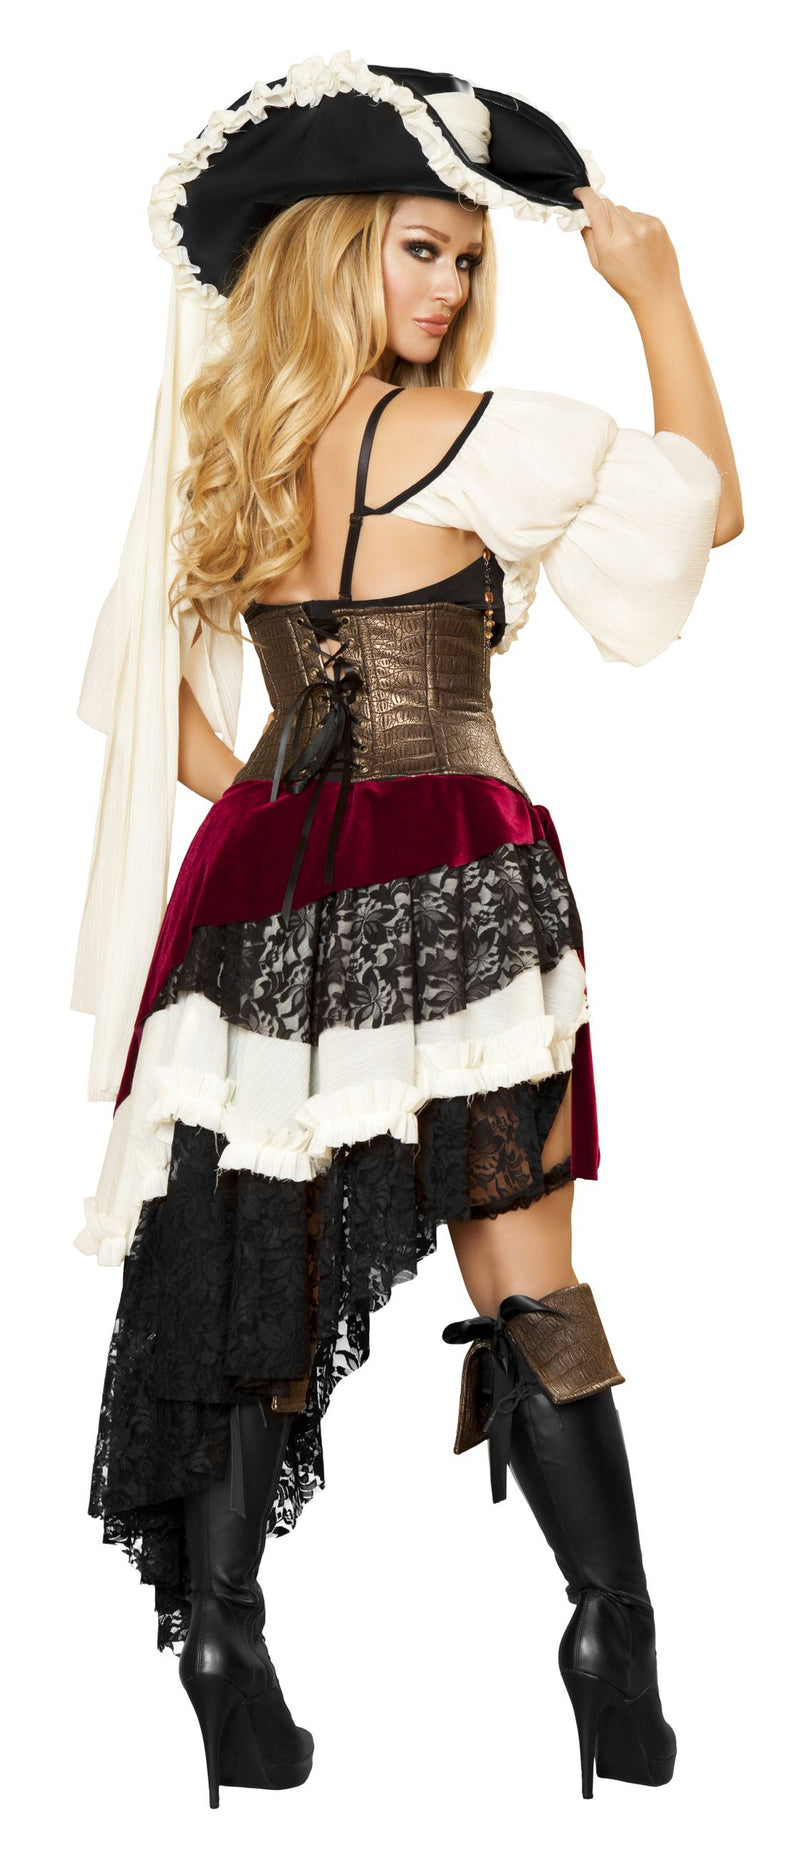 3 Piece Pirate Bra Top Cincher & Layered Skirt Party Costume - Fest Threads